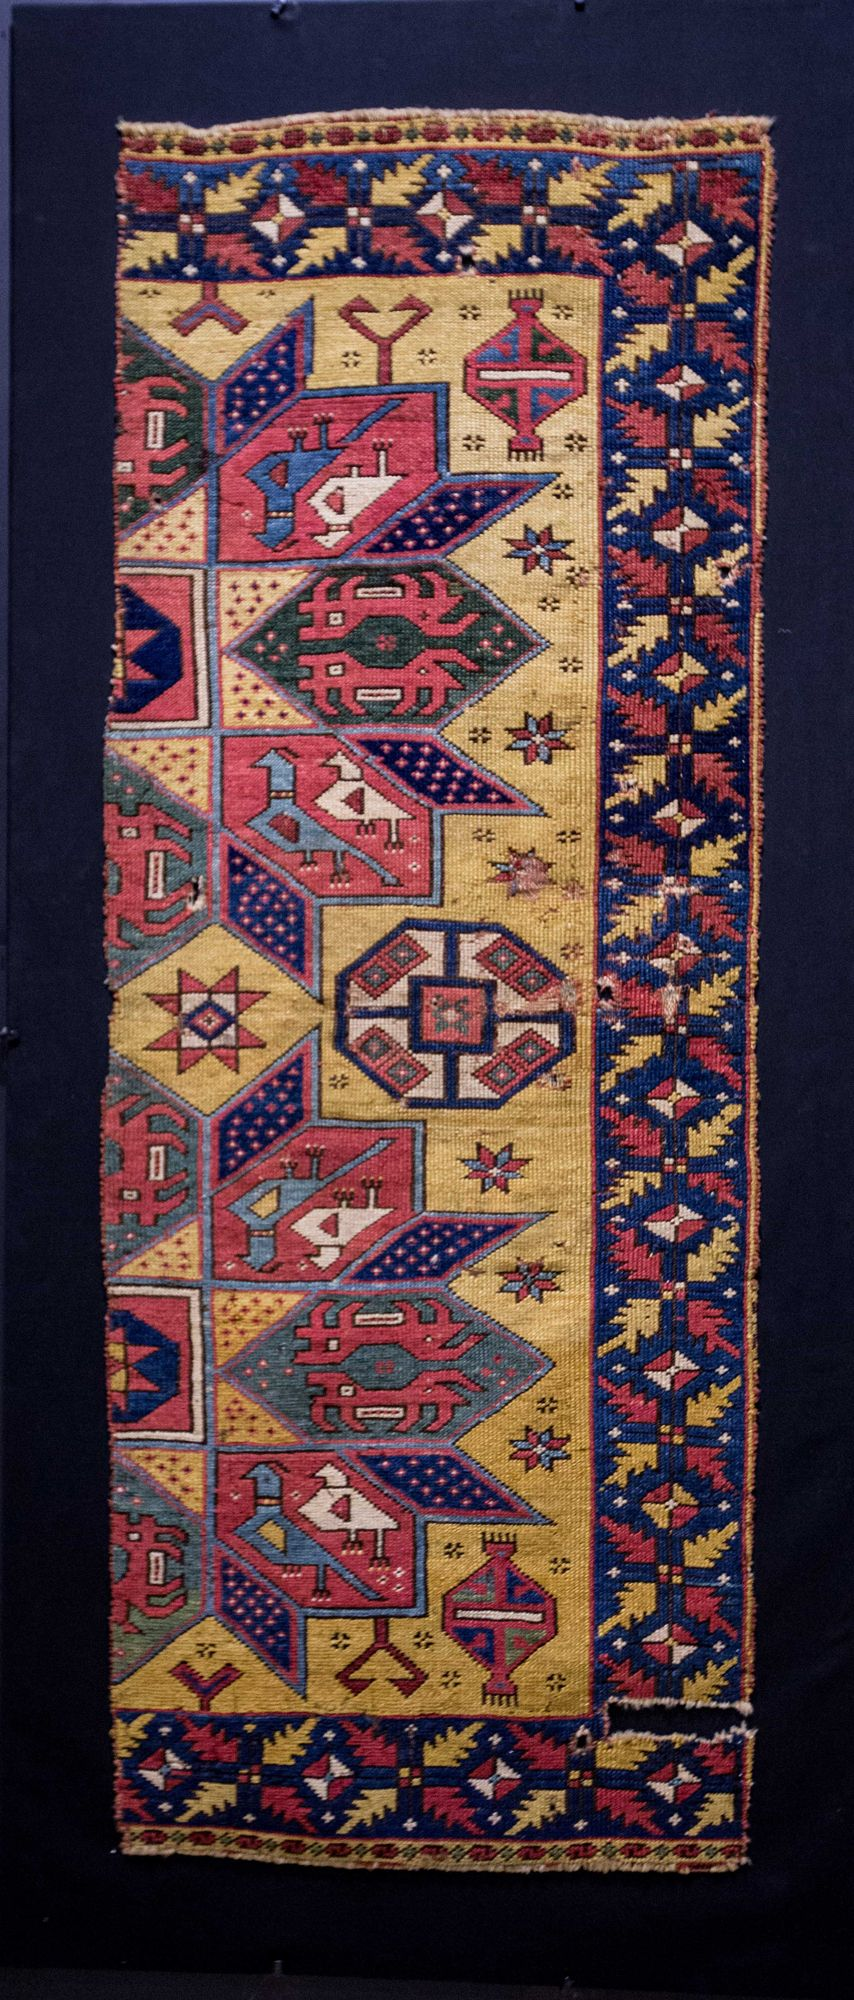 Pin by Seref Ozen Antique Tribal Rugs and Textiles on Co Exhibition ...